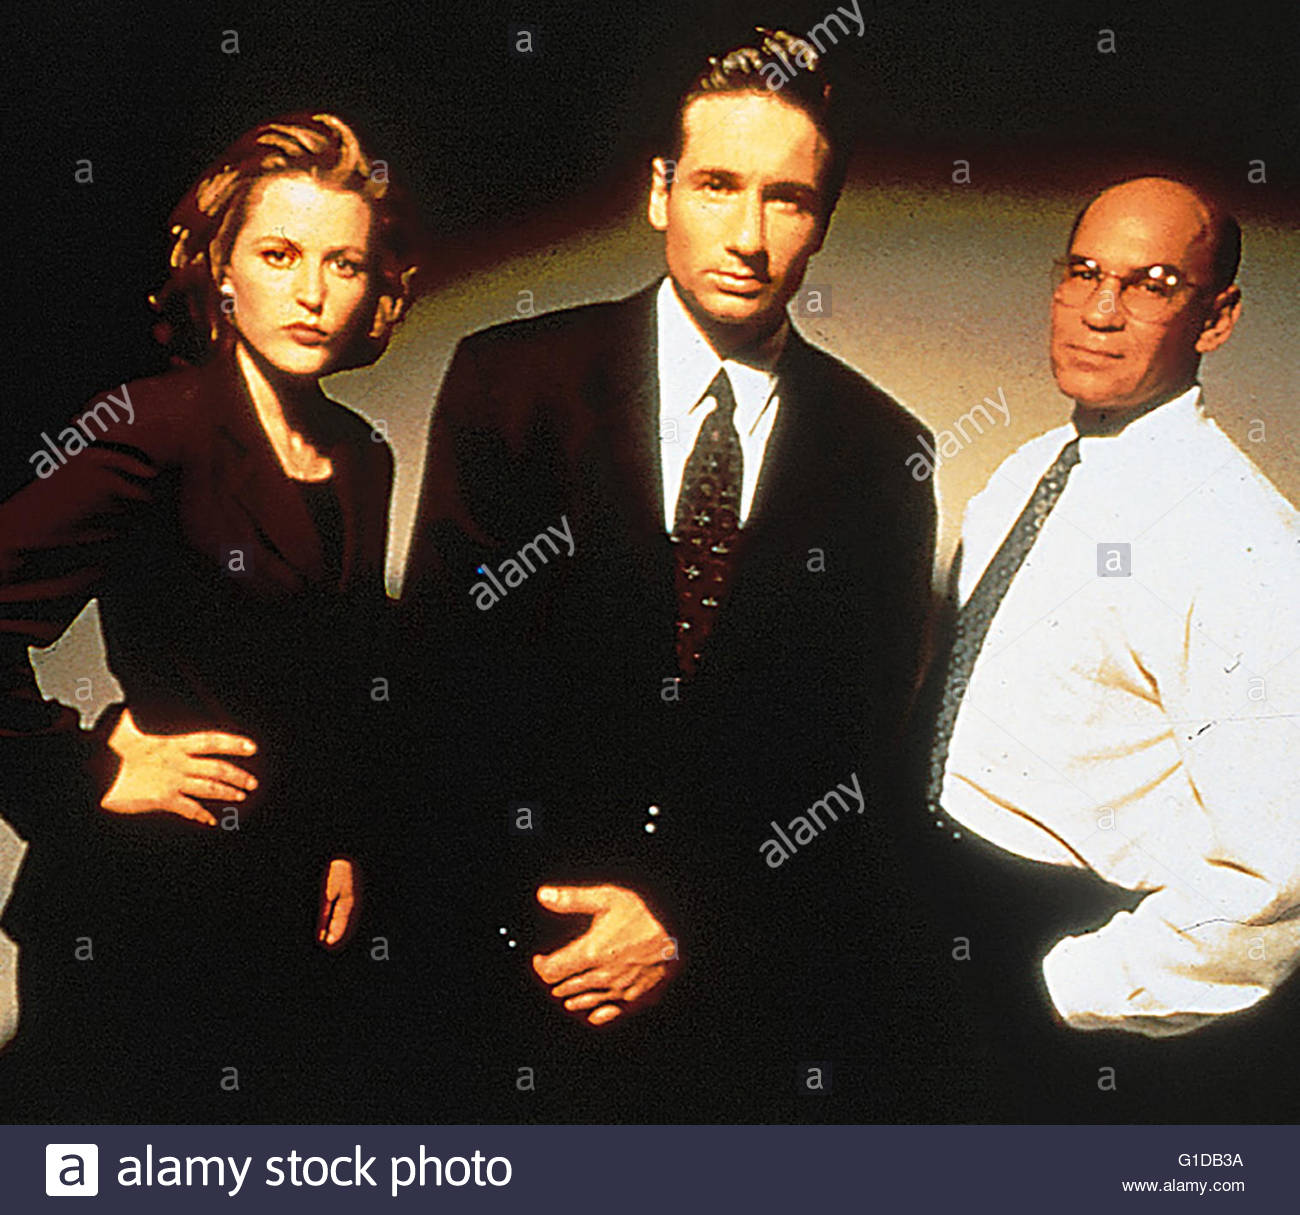 Akte X - Die Entführung / Gillian Anderson / David Duchovny / Akte X - Season  Collection / The X-Files, - Stock Image